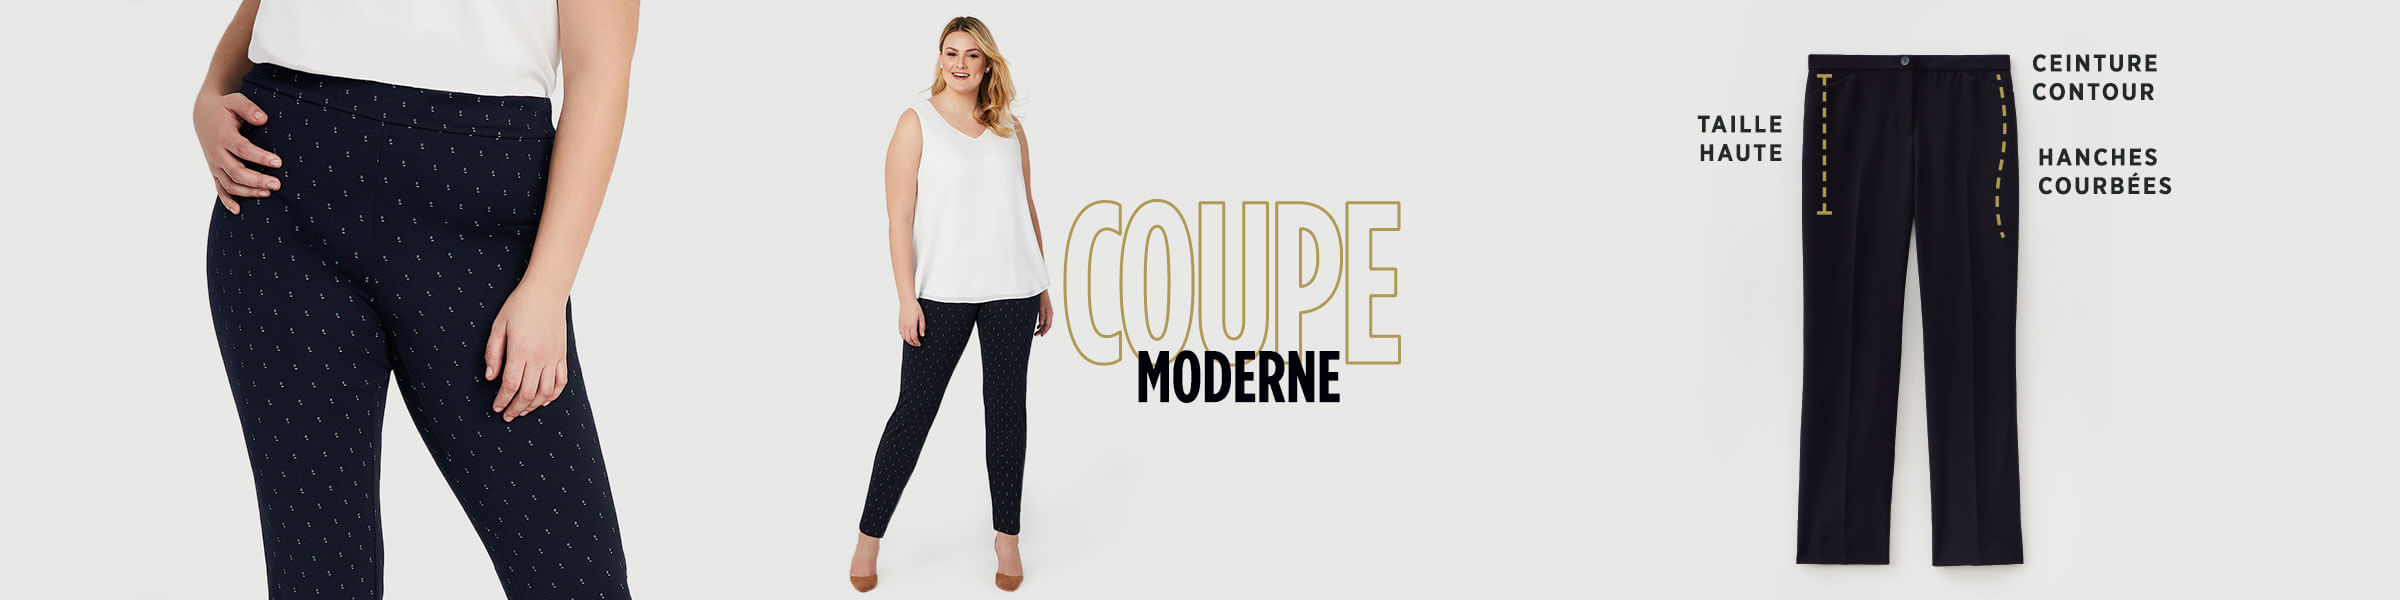 Laura Plus - Coupe moderne